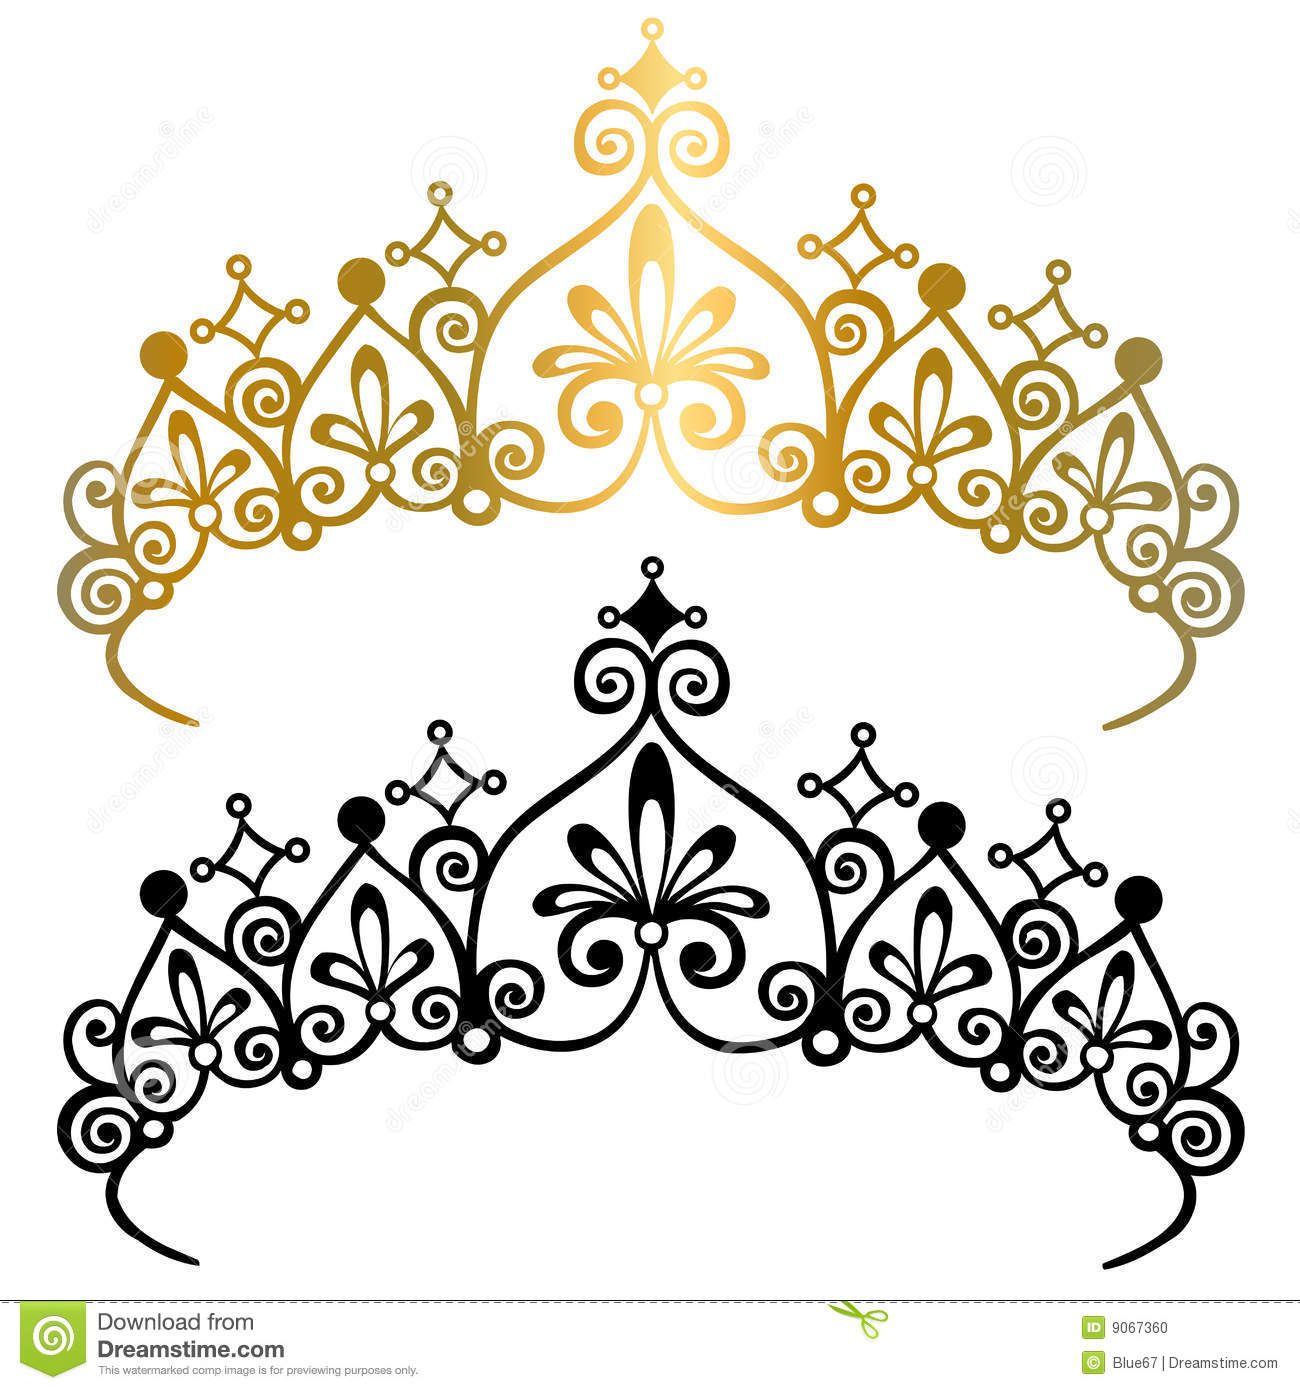 Princess Tiara Crowns Vector Illustration - Download From Over 39 Million High Quality Stock Photos, Images, Vectors. Sign up for FREE today. Image: 9067360